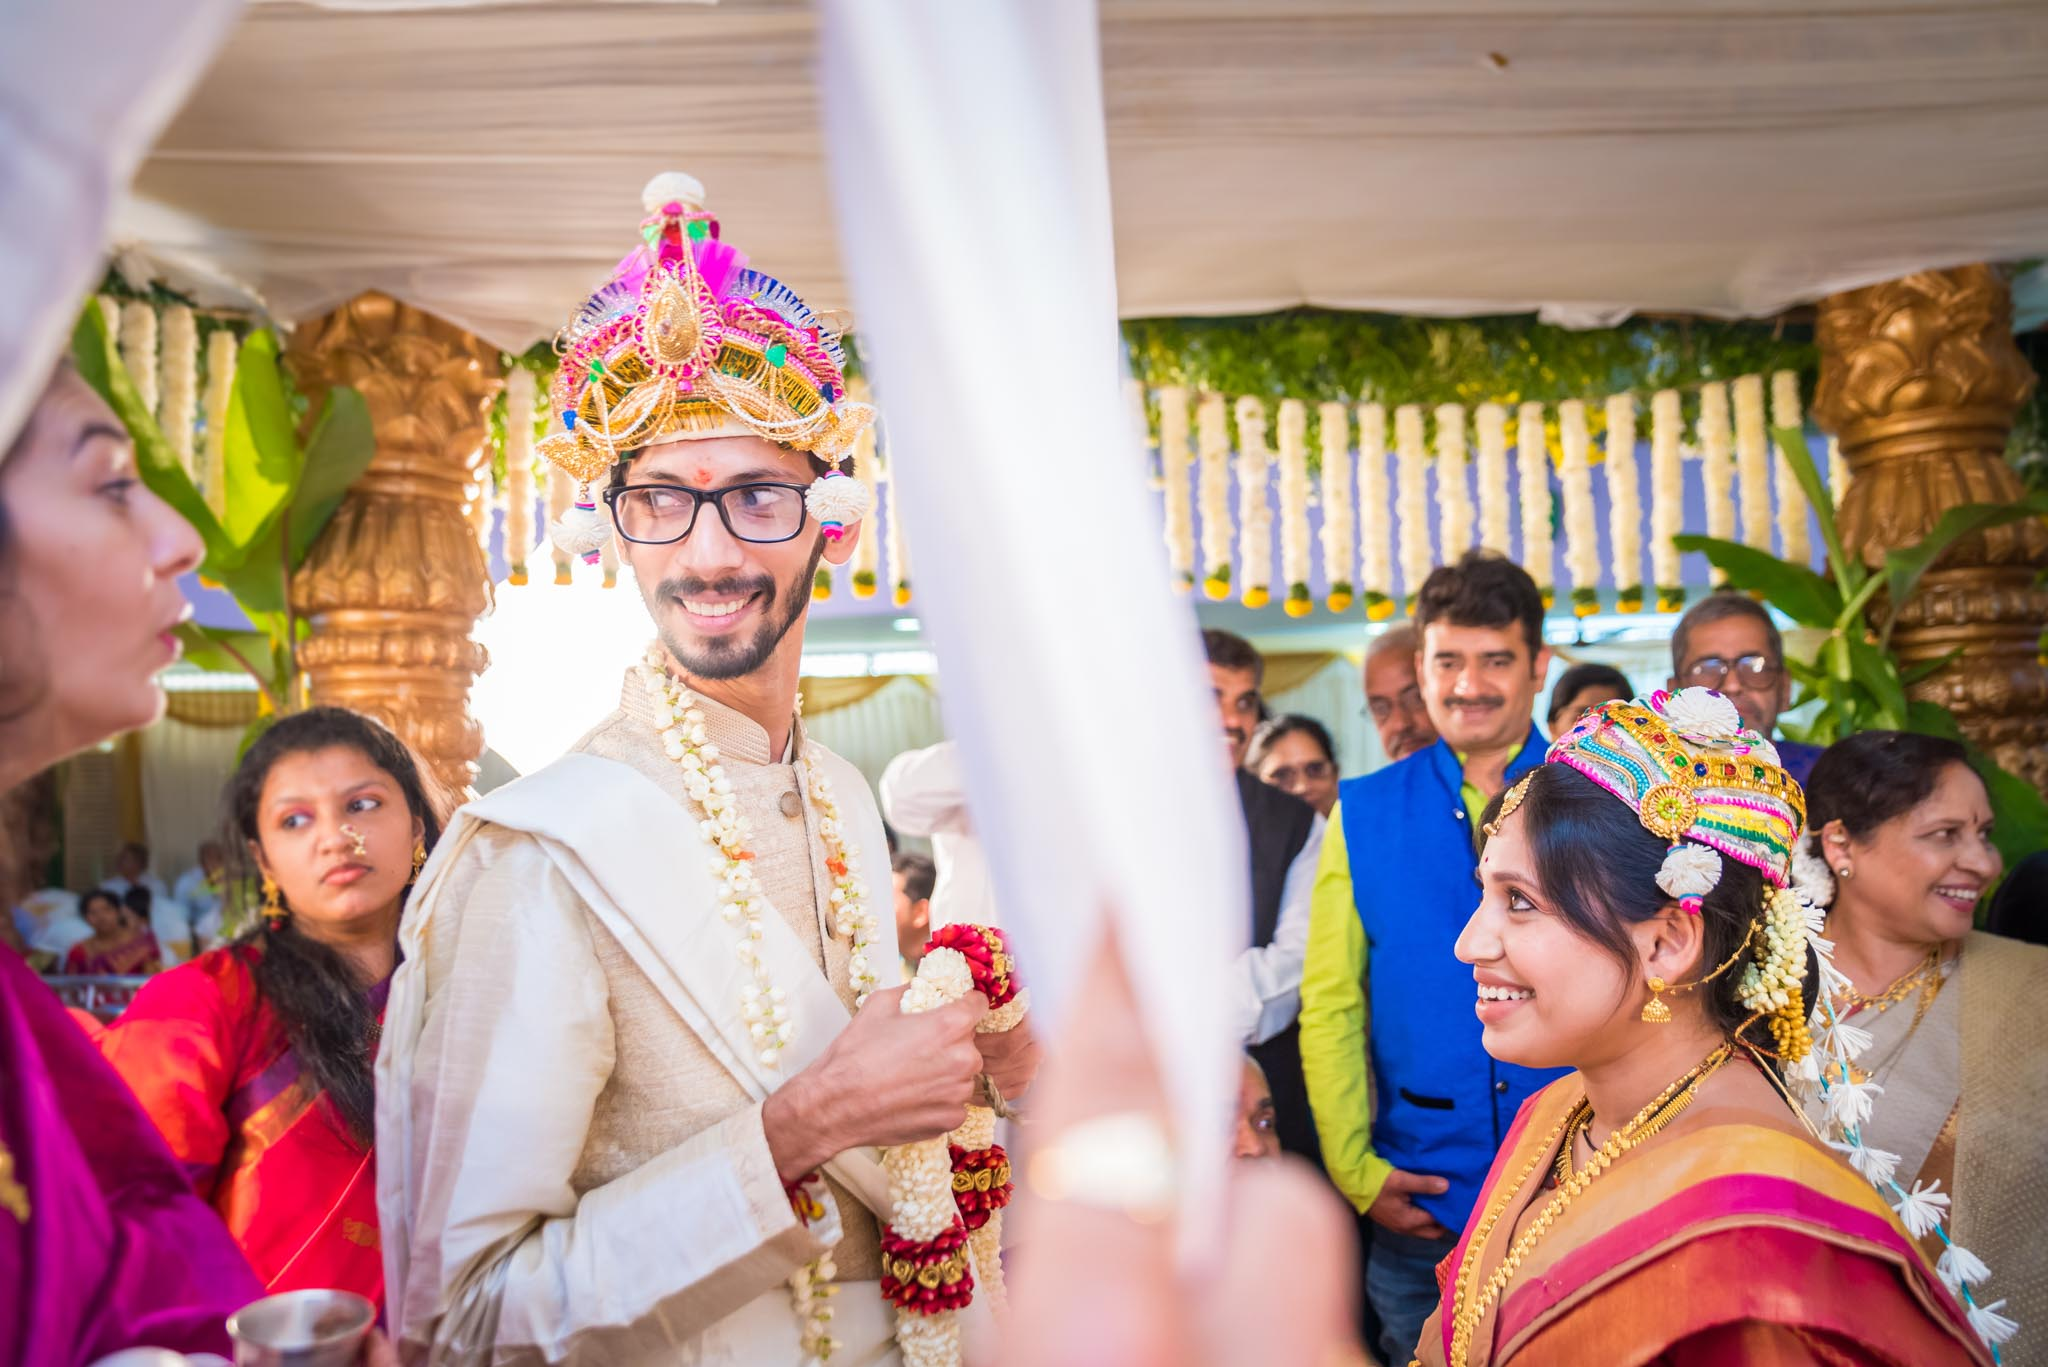 WhatKnot-Candid-Wedding-Photography-Mumbai-Bangalore-160